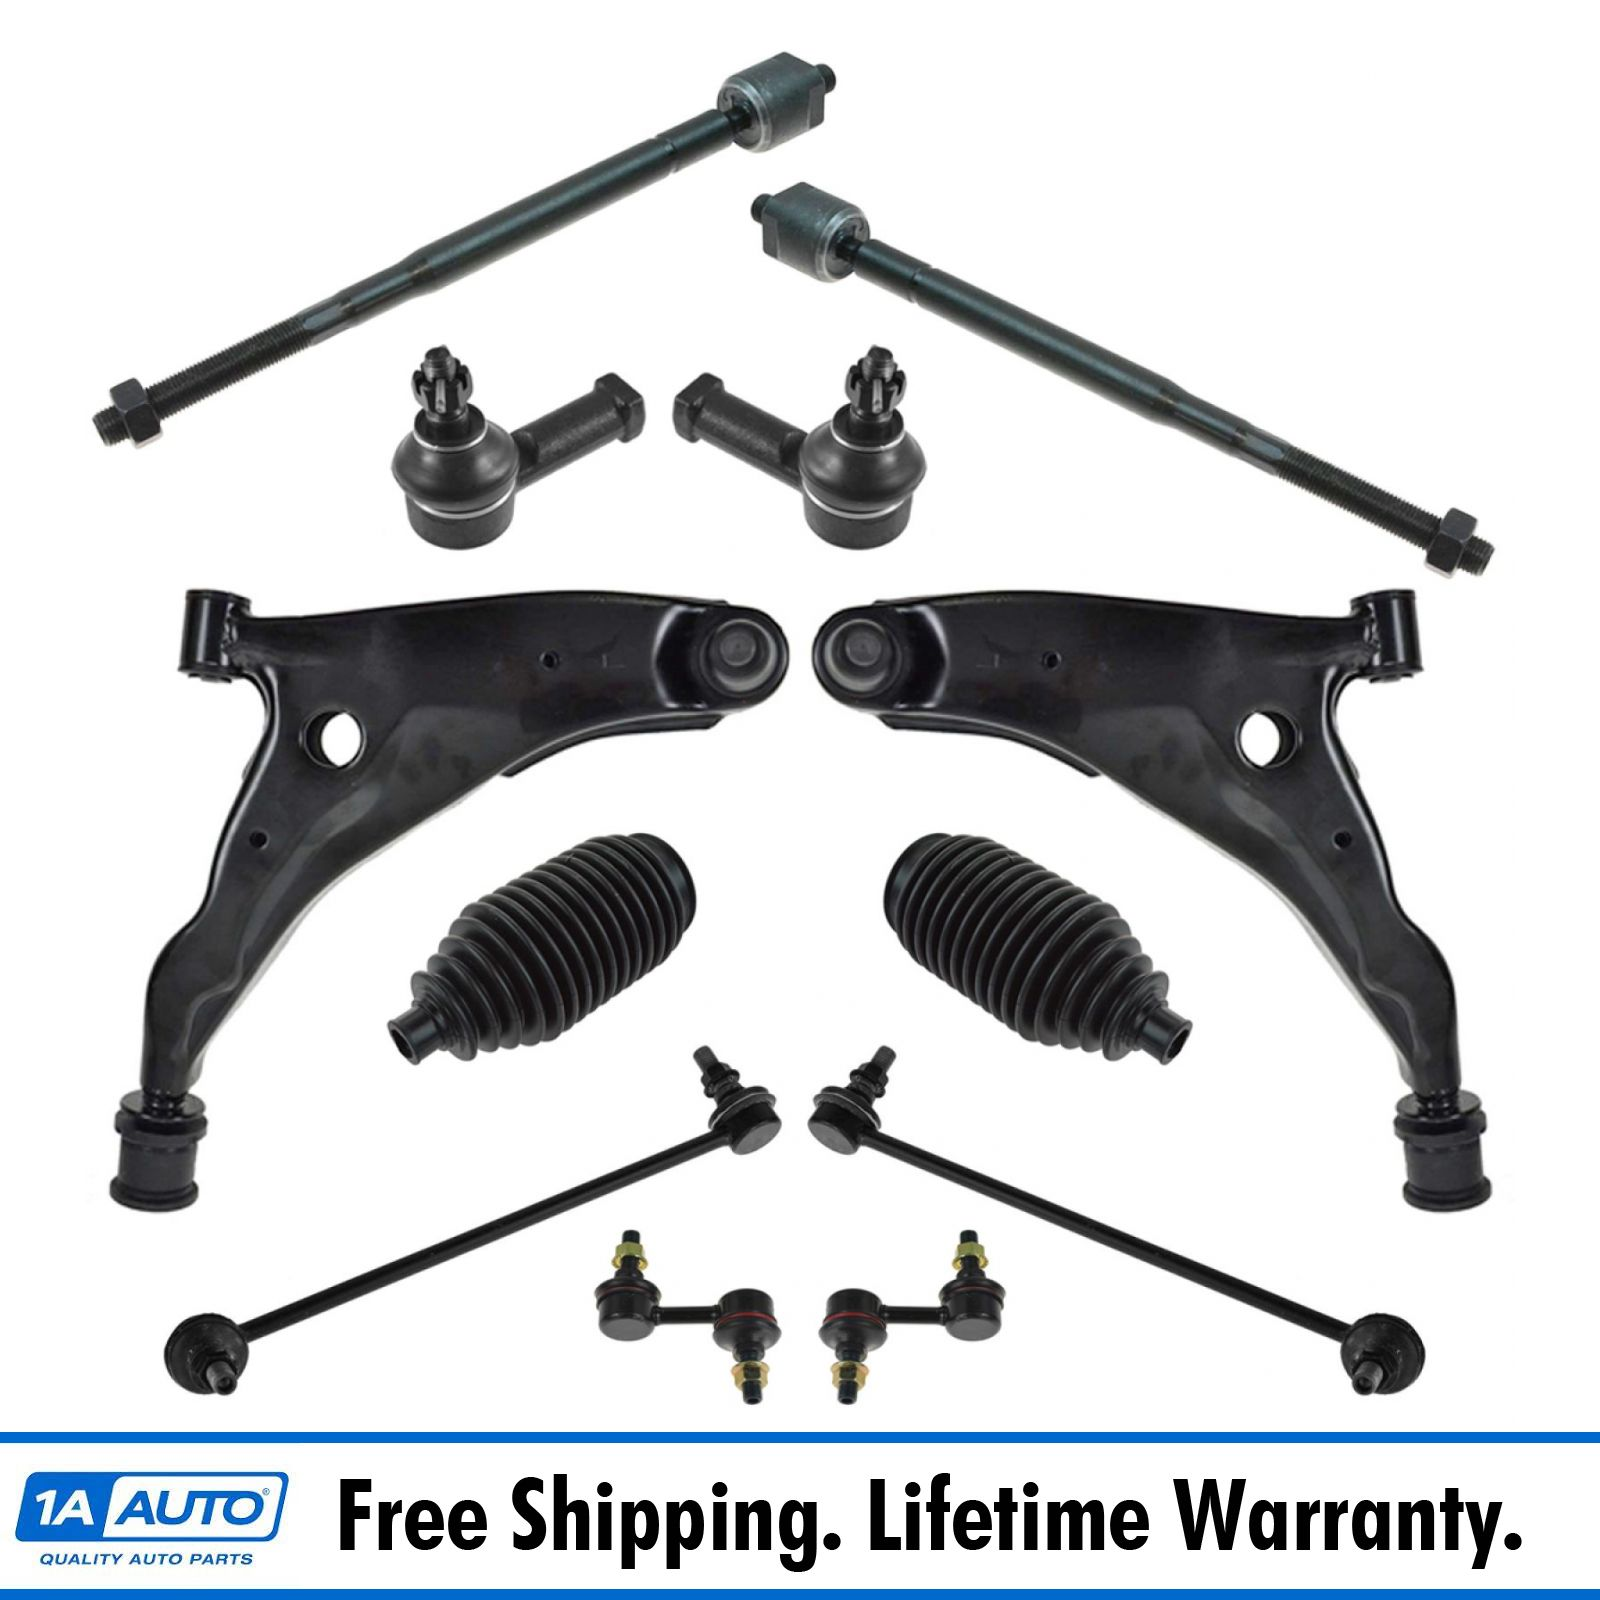 12 Pc Suspension Kit for Toyota Corolla Front /& Rear Sway Bars /& Tie Rod Ends